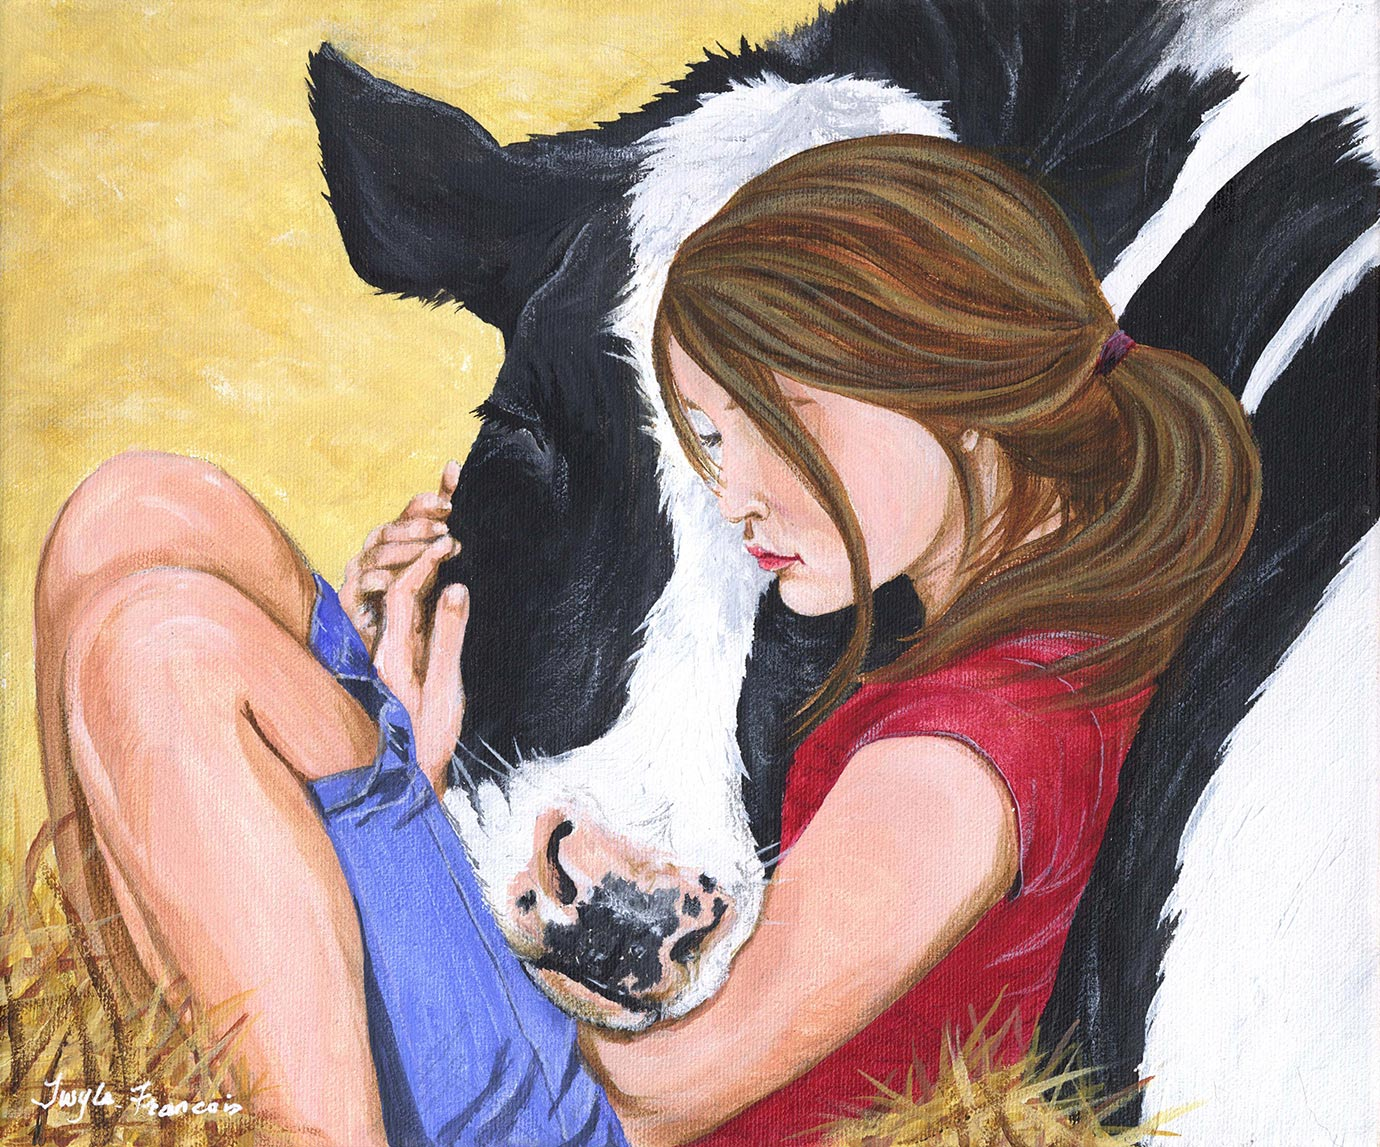 Painting of a girl in hay hugging a cow